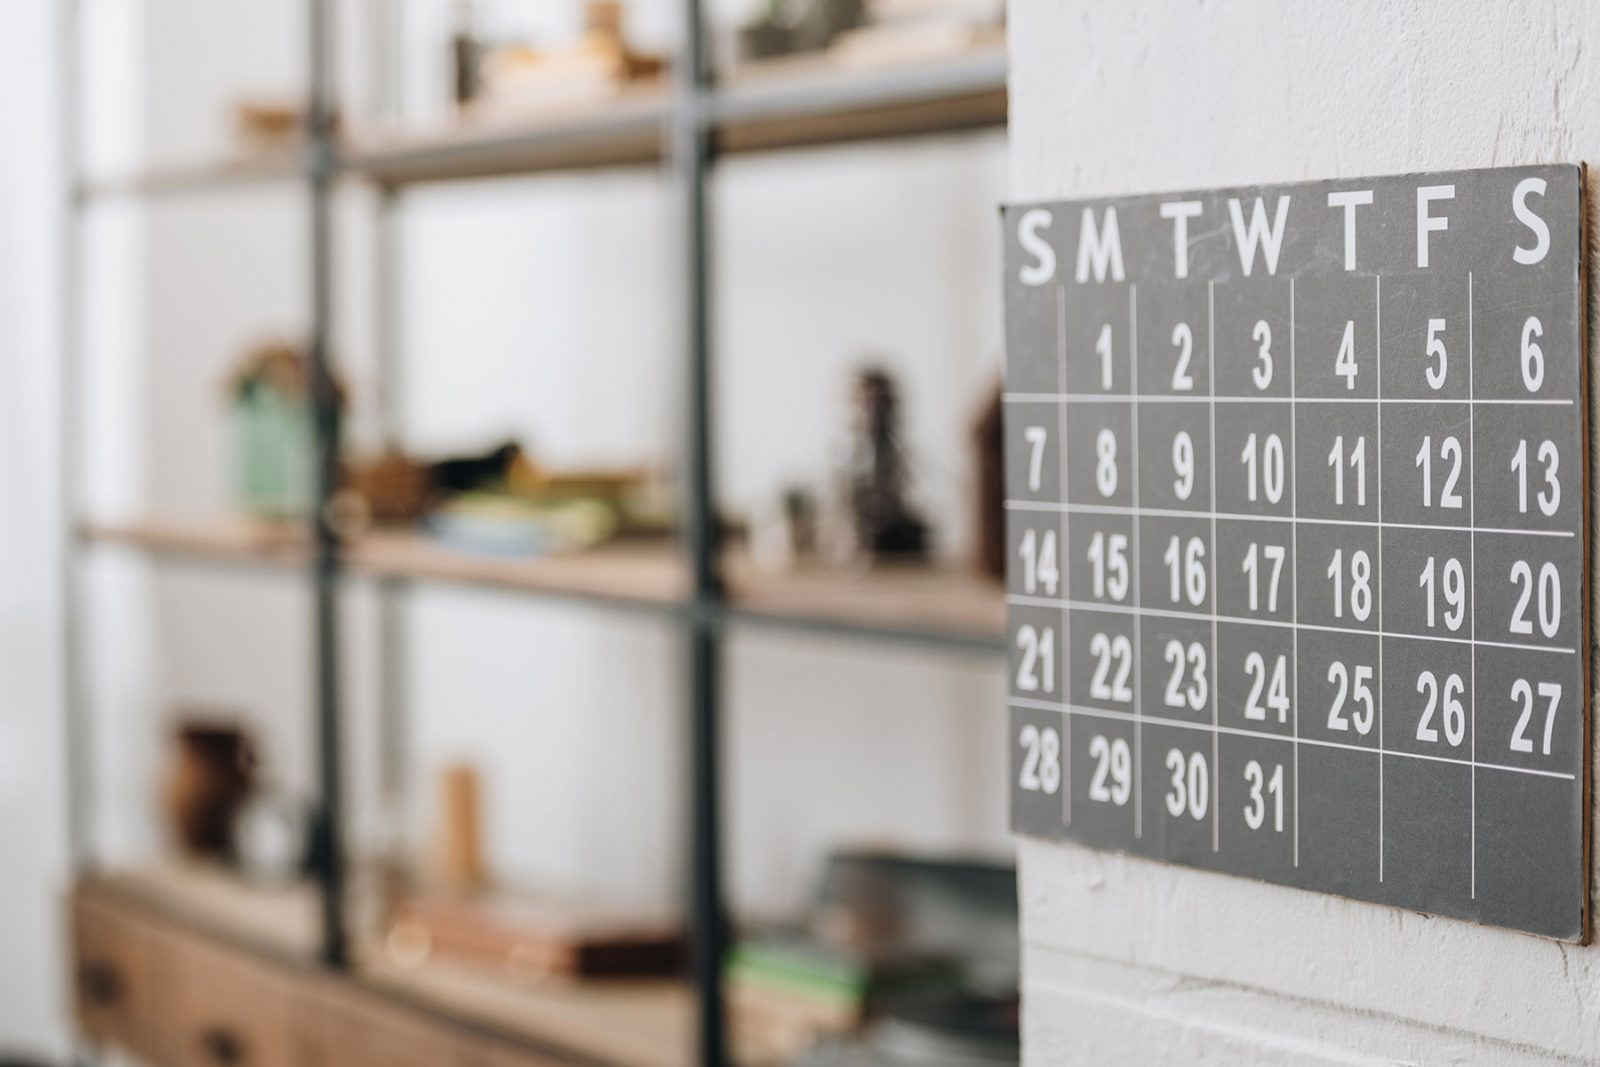 image of a calendar on a kitchen wall